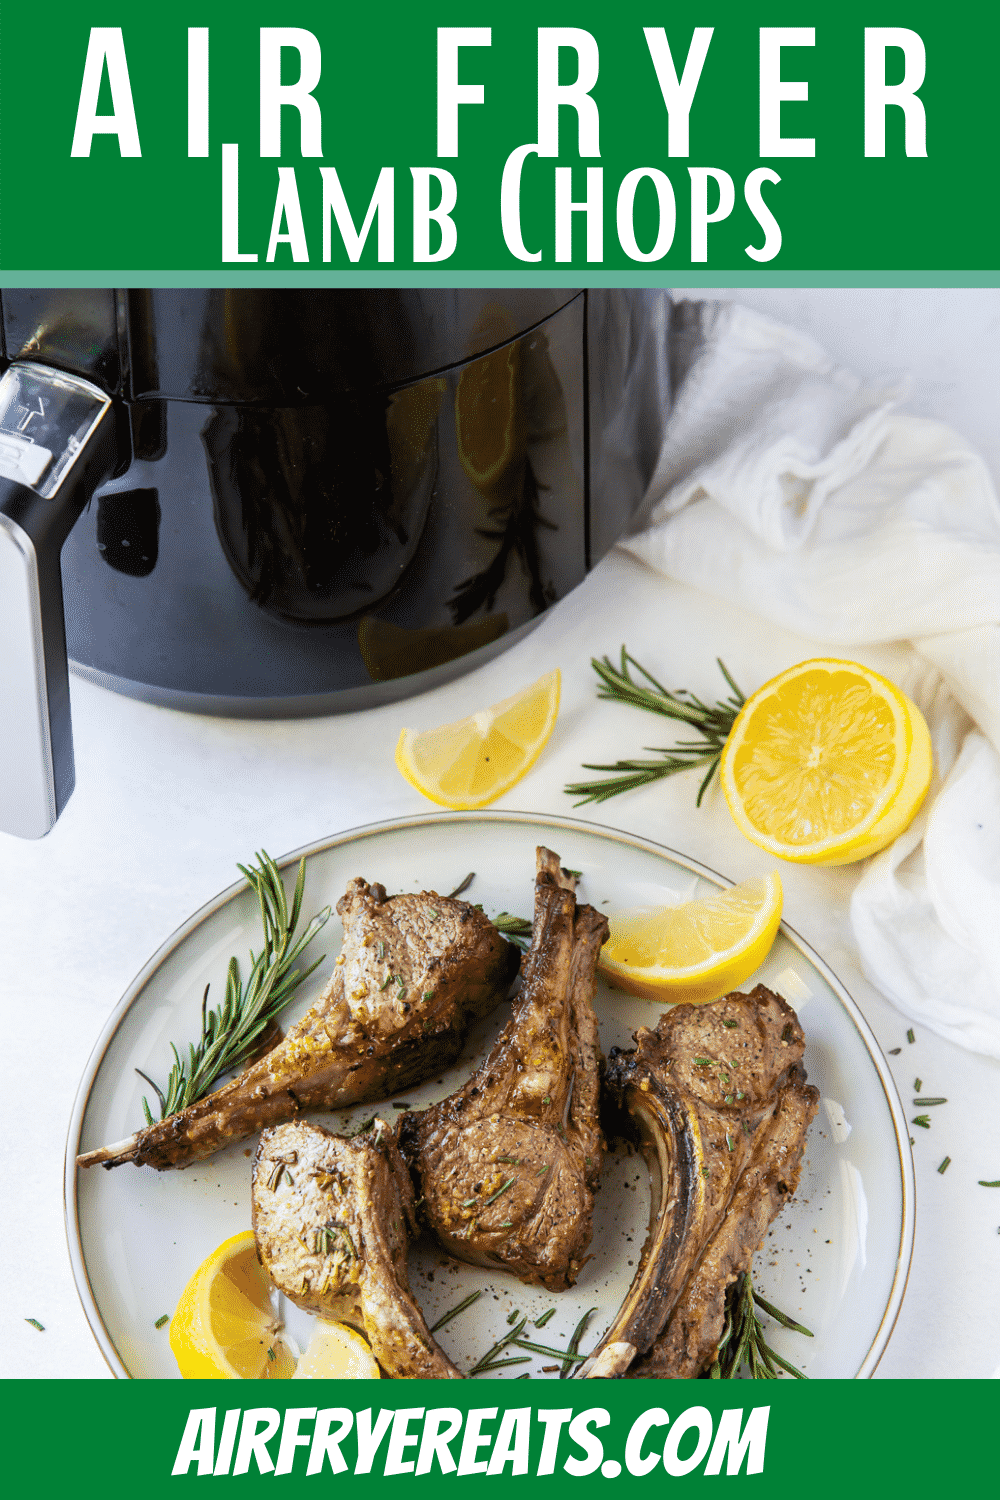 Air Fryer Lamb Chops are cooked perfectly in under 10 minutes. These lamb chops are perfectly seasoned with a flavorful marinade and make an impressive dinner for your family or guests. #airfryer #lamb #lambchops via @vegetarianmamma